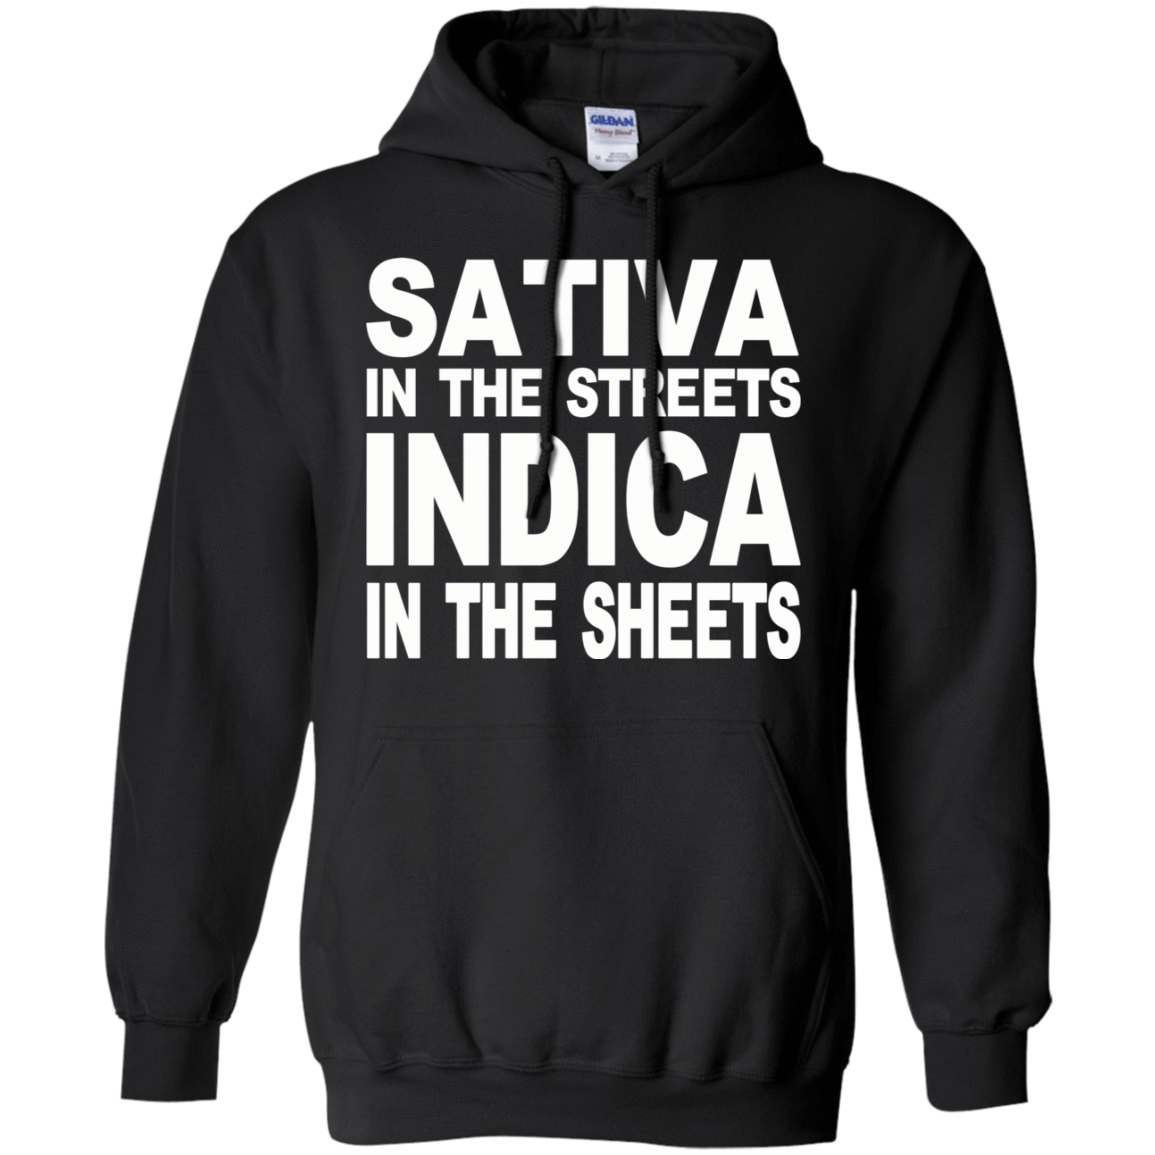 Sativa In The Streets Indica In The Sheets 541-4740-74096117-23087 - Tee Ript